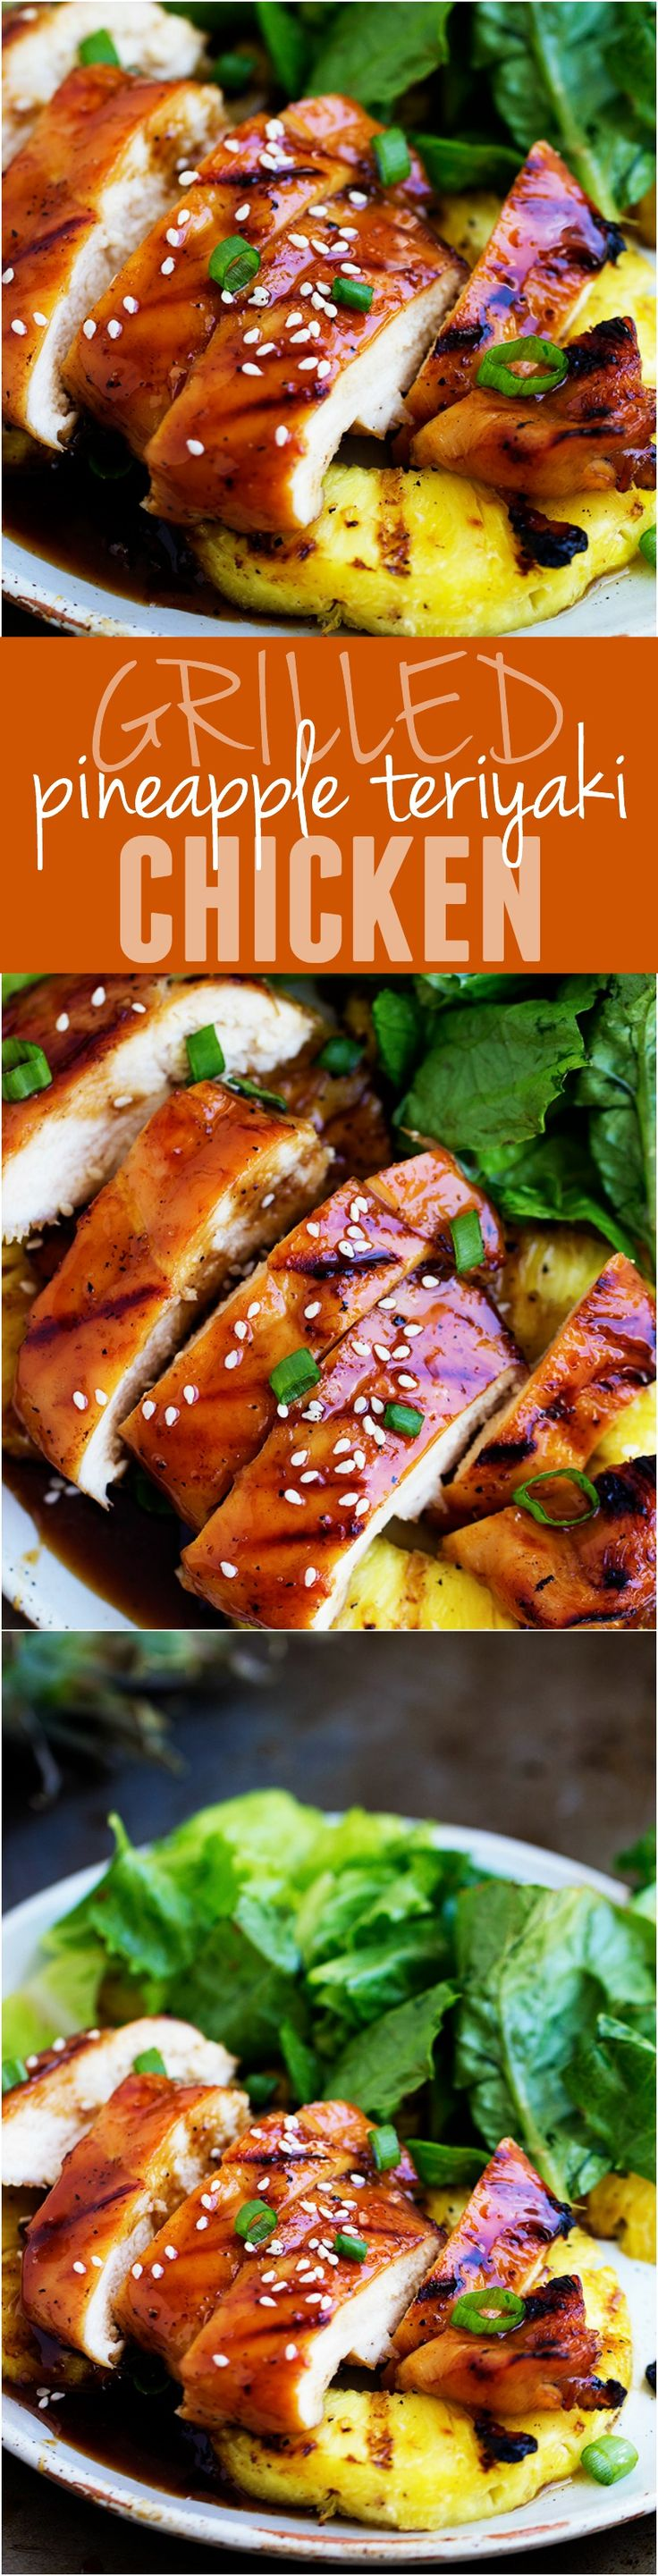 This Grilled Pineapple Teriyaki Chicken will be the BEST thing that you grill this summer! One of the best recipes on the blog!